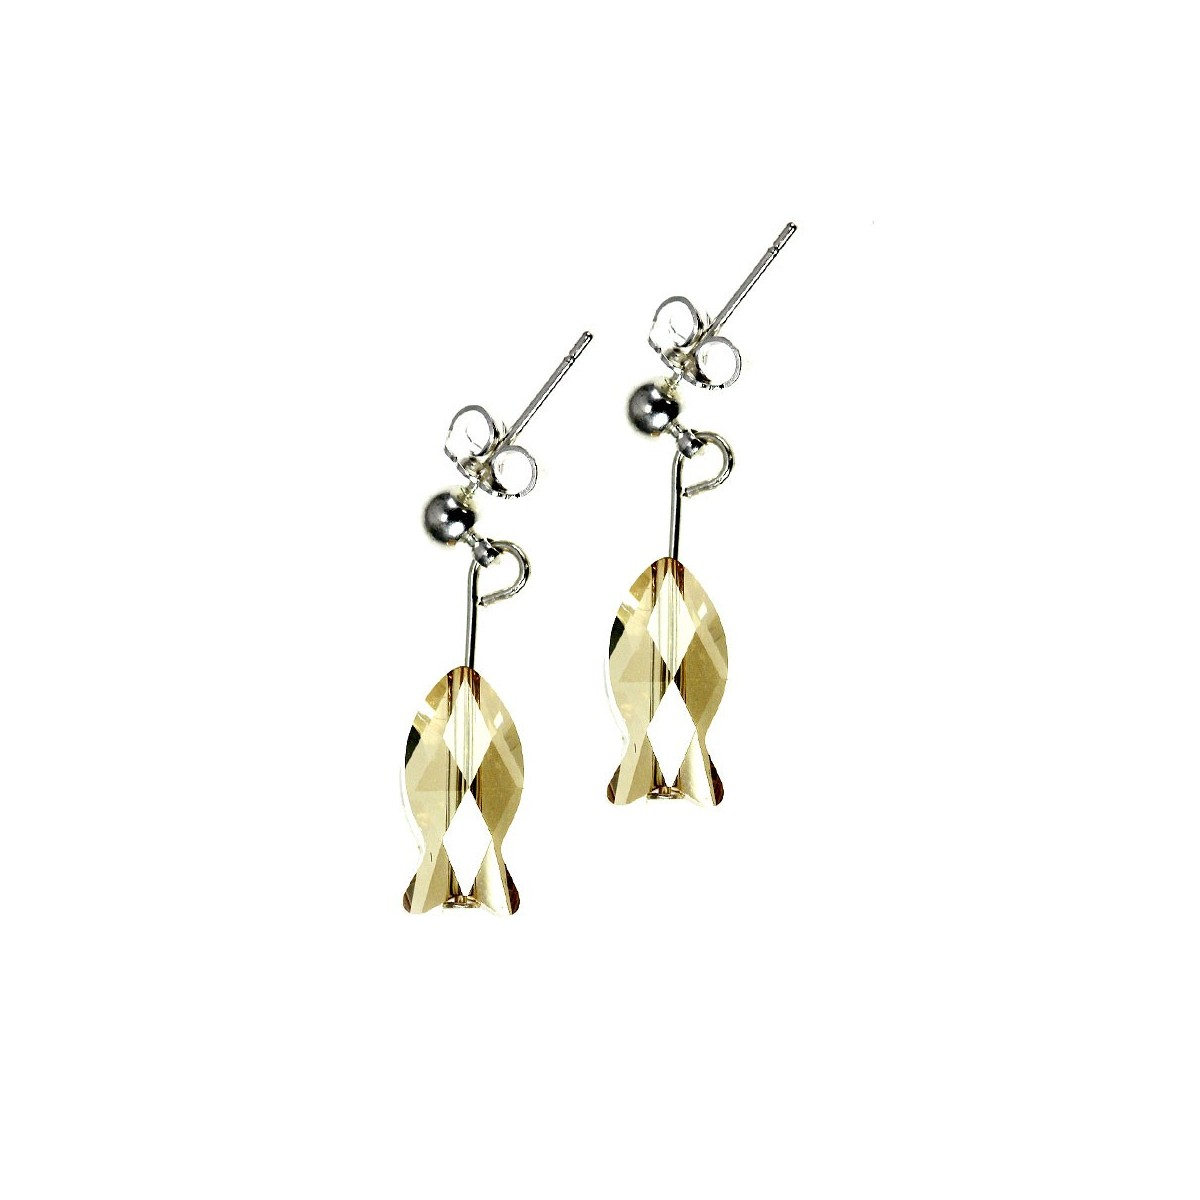 Boucles d'oreilles So Charm ornées d'un poisson golden made with crystal from Swarovski